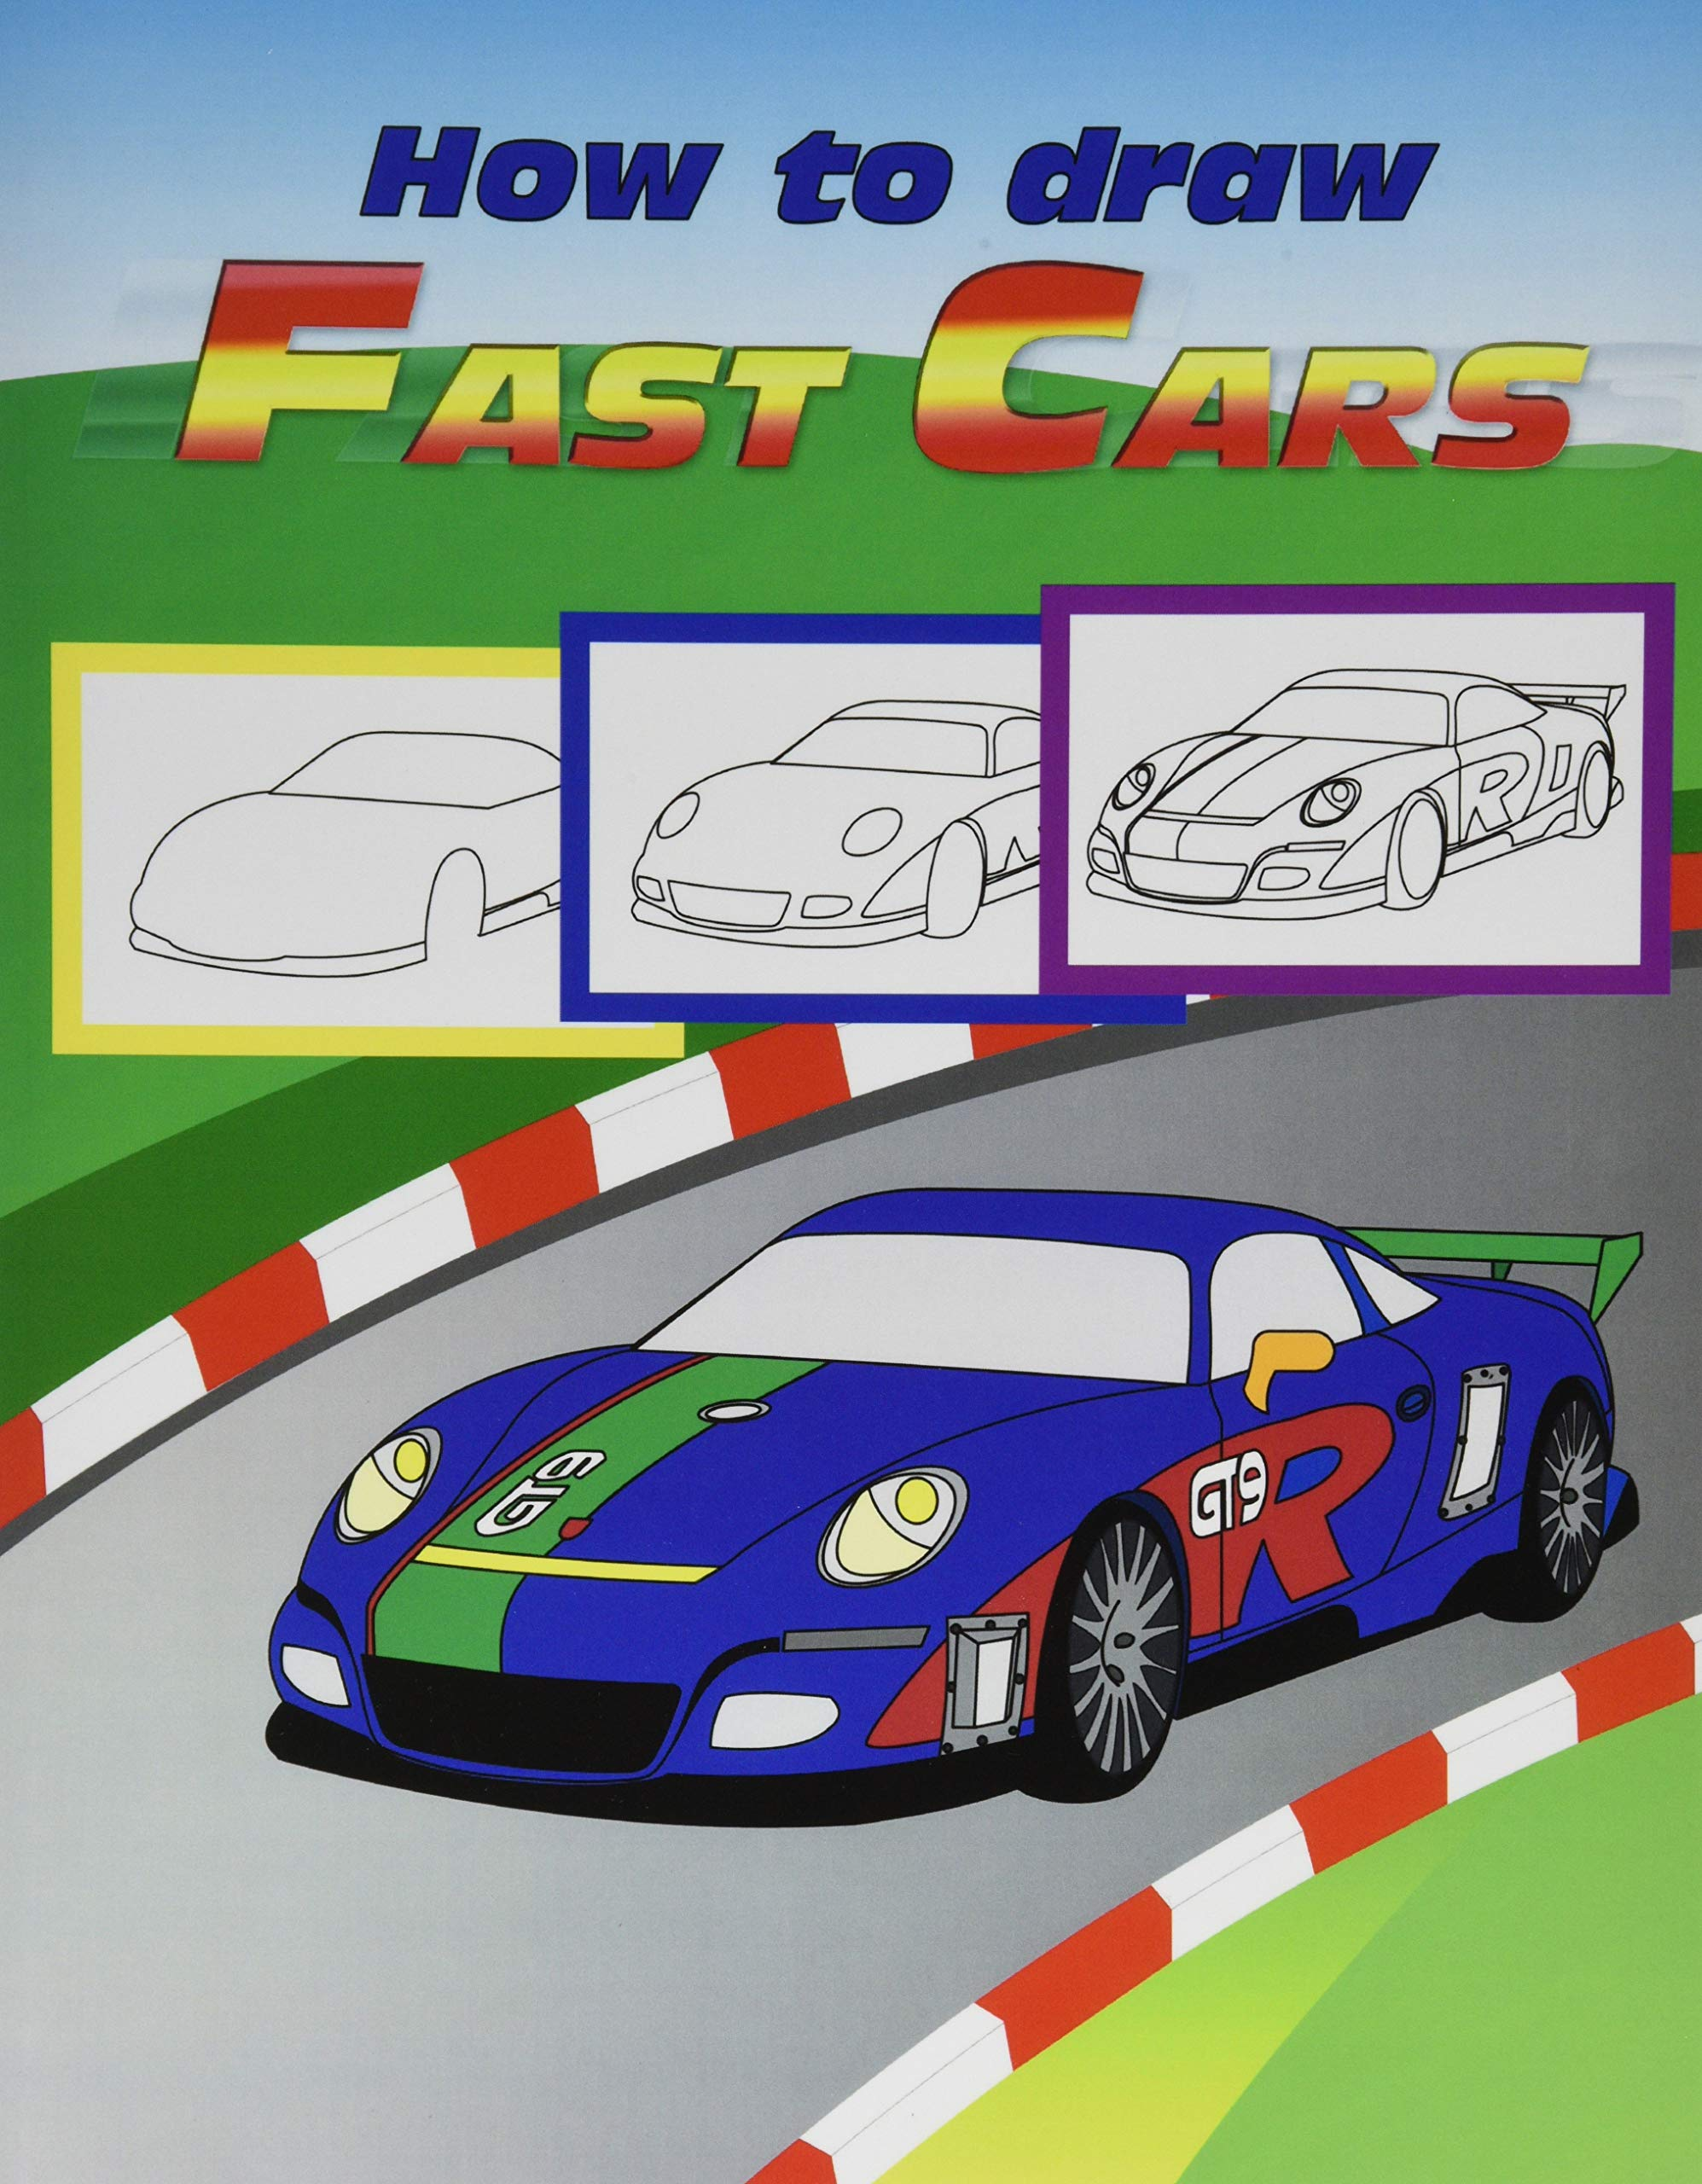 Amazon Com Fast Cars How To Draw Guide Step By Step Drawing Guide 2 In 1 Learn In Easy Steps And Color Learn And Color Veyron Aston Martin Camaro Gt Koenigsegg